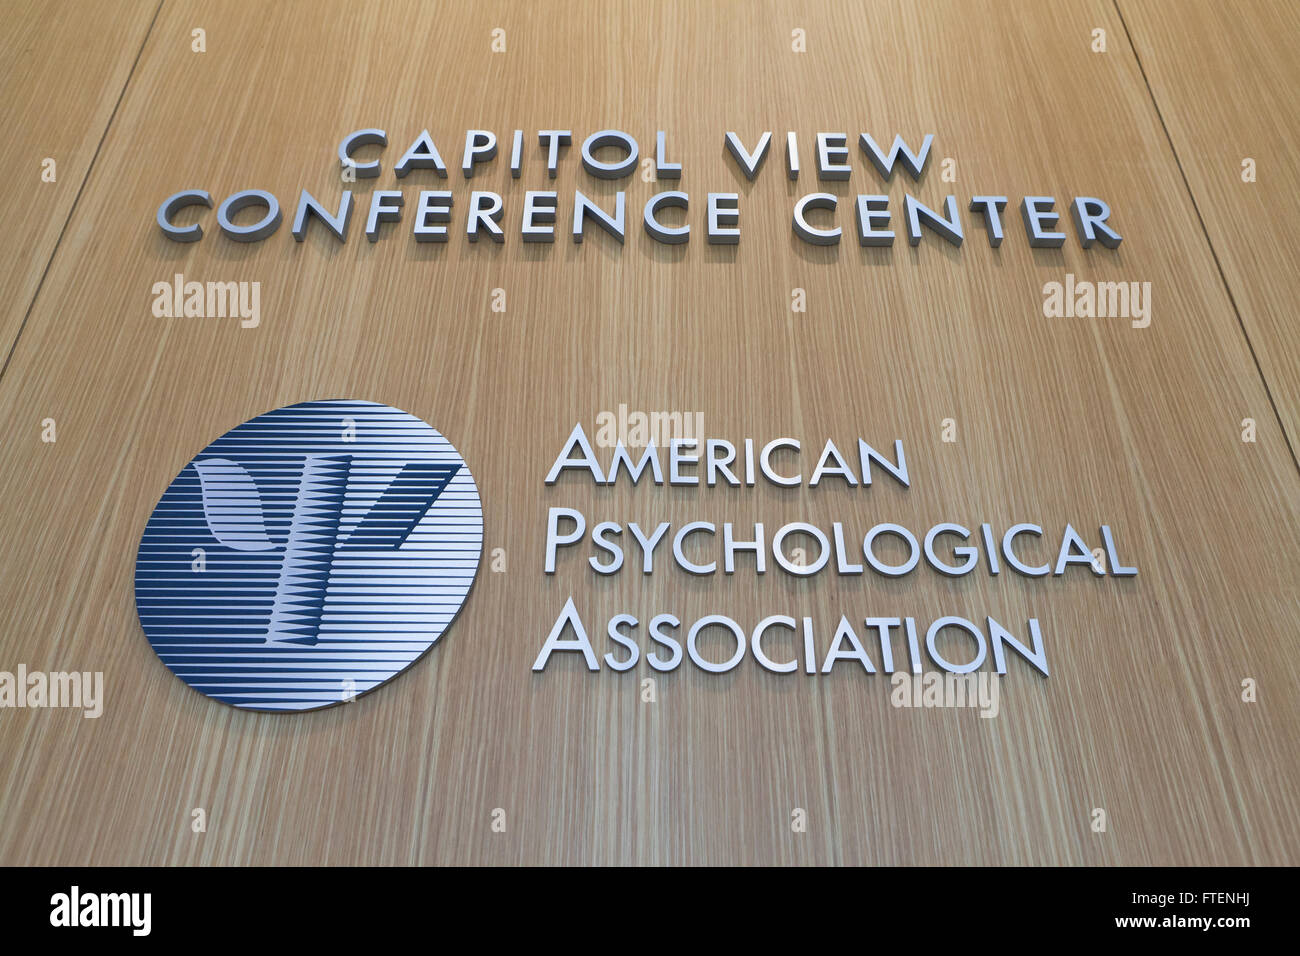 American Psychological Association lobby sign - Washington, DC USA - Stock Image